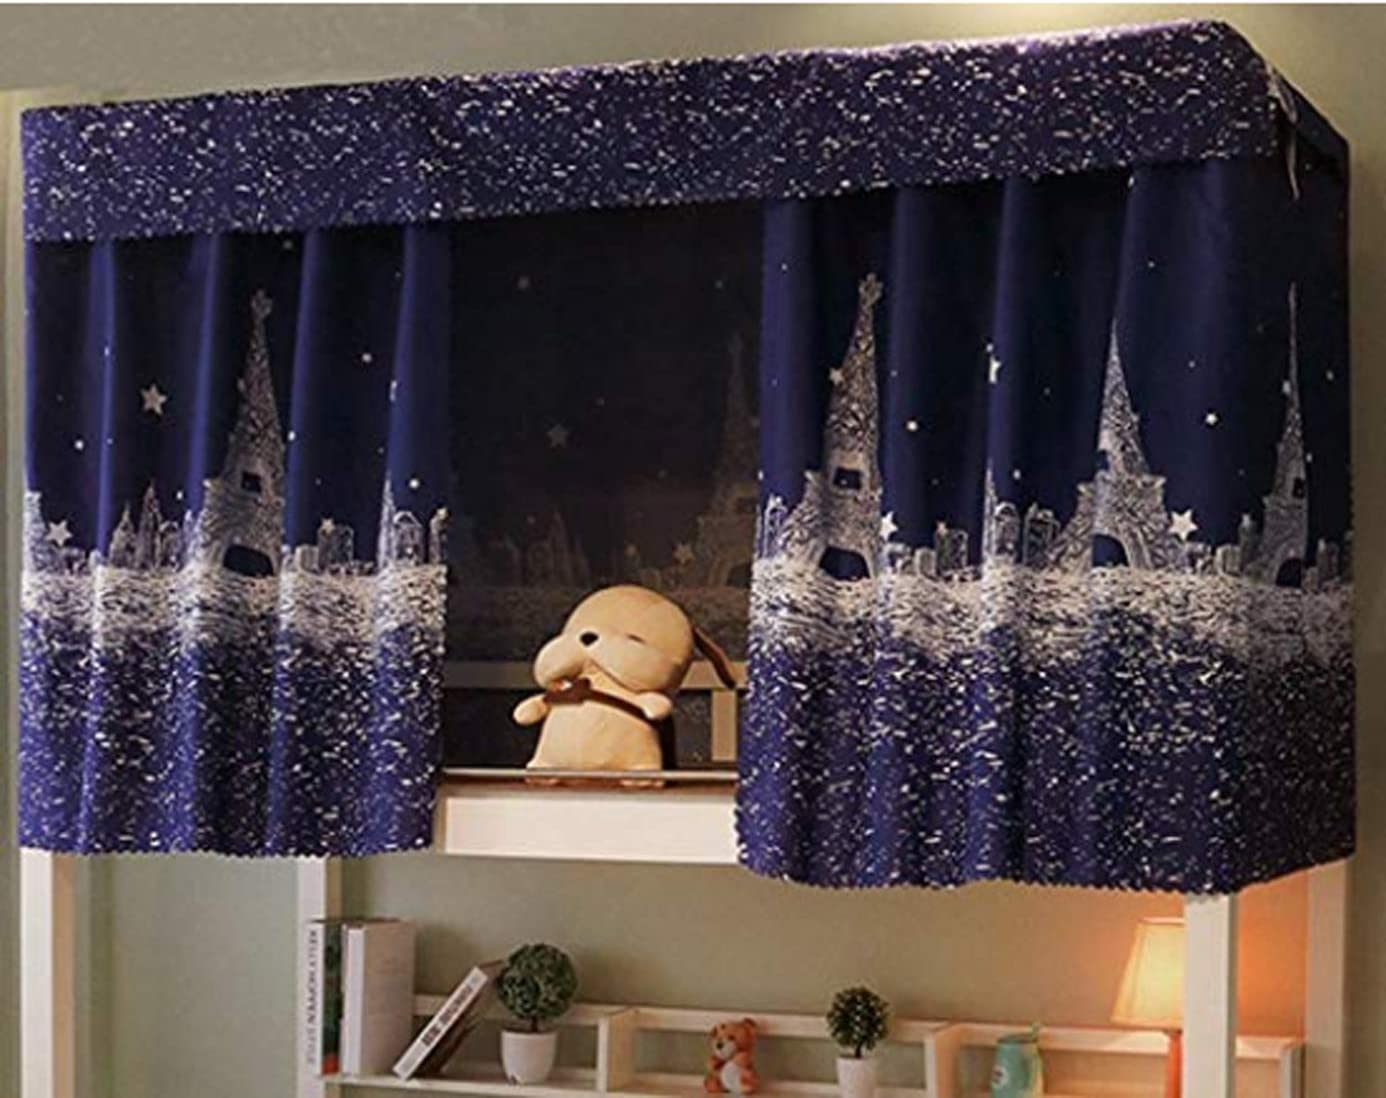 JIAHG Students Dormitory Bunk Bed Curtains/Single Bed Tent Curtain Shading Nets Dustproof Blackout Cloth Bed Canopy Mosquito Protection Net Bedroom Cabin Decor Mid-Sleeper Spread Blackout Curtains